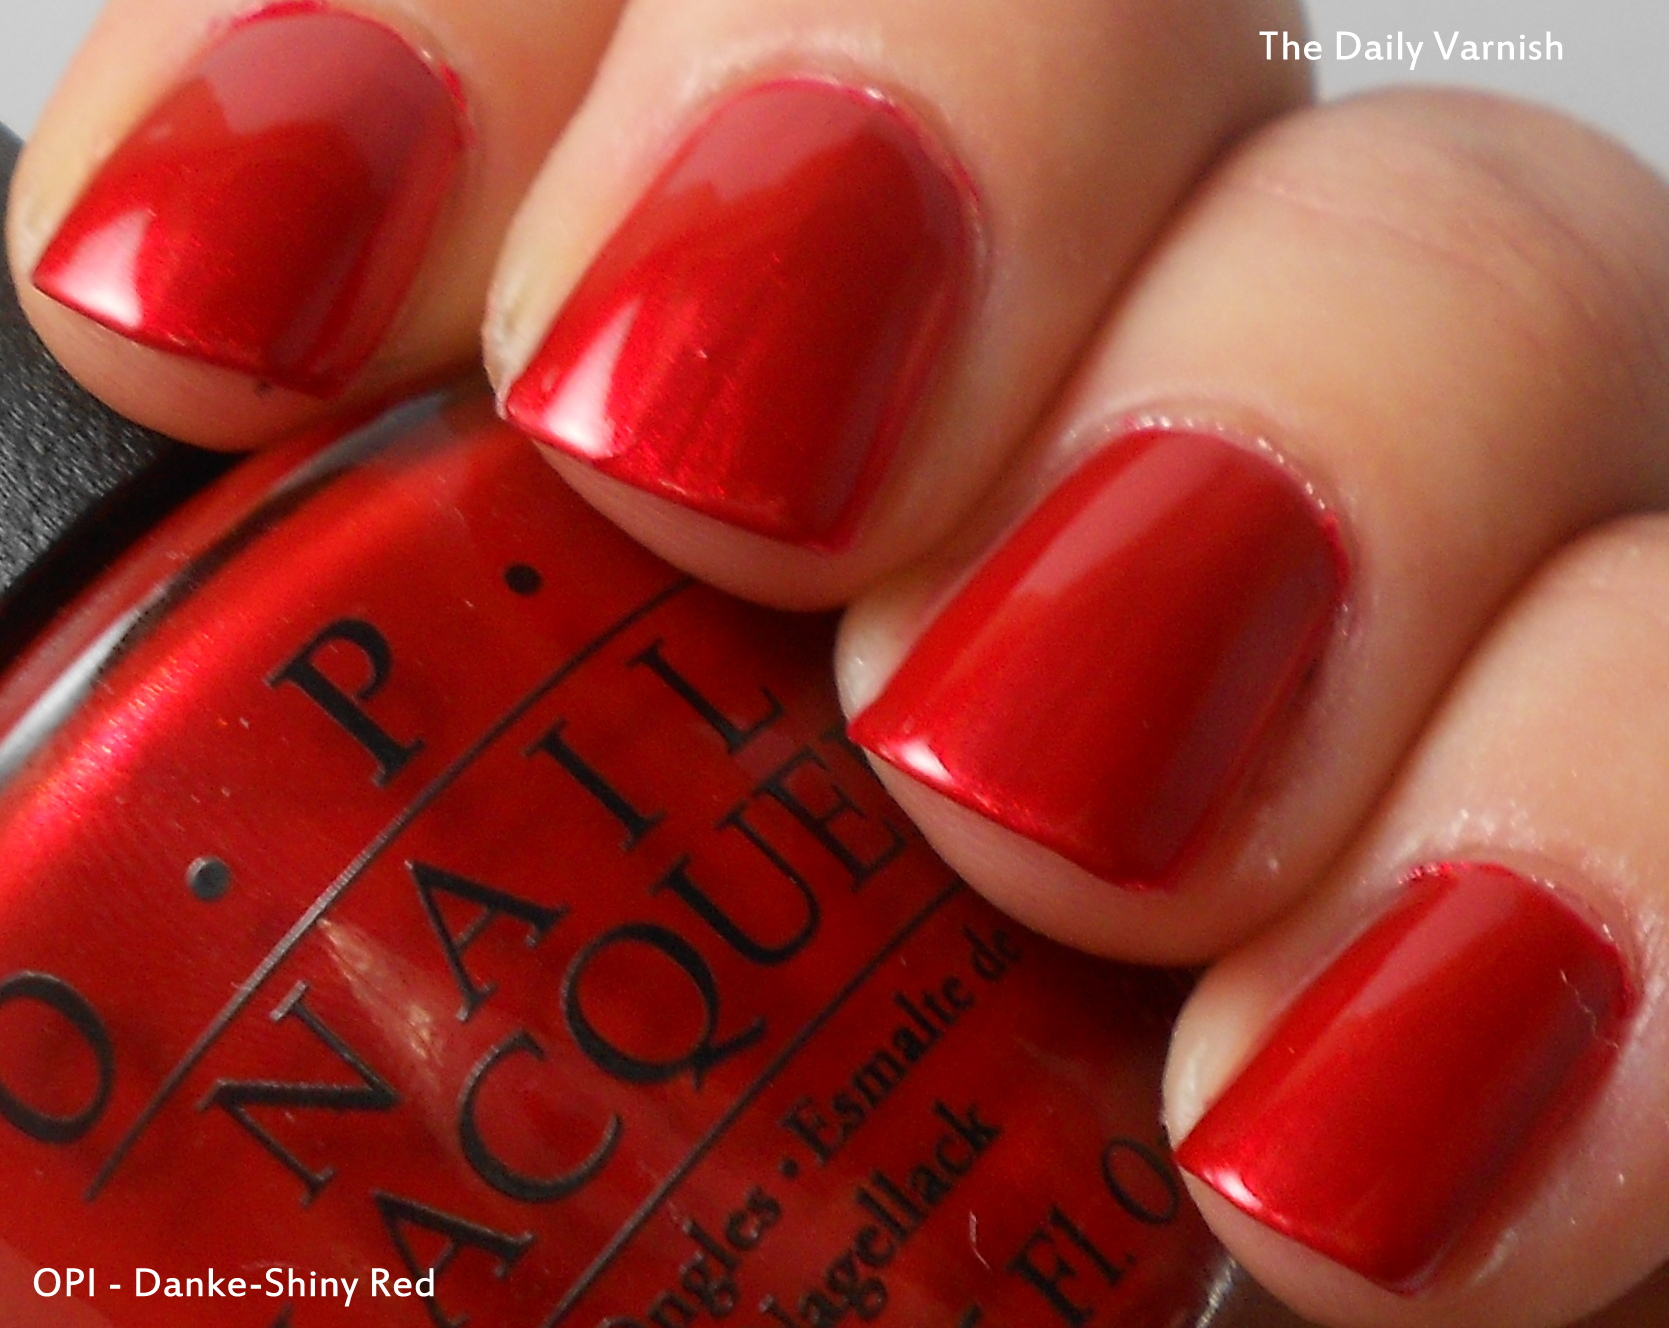 Opi danke shiny red